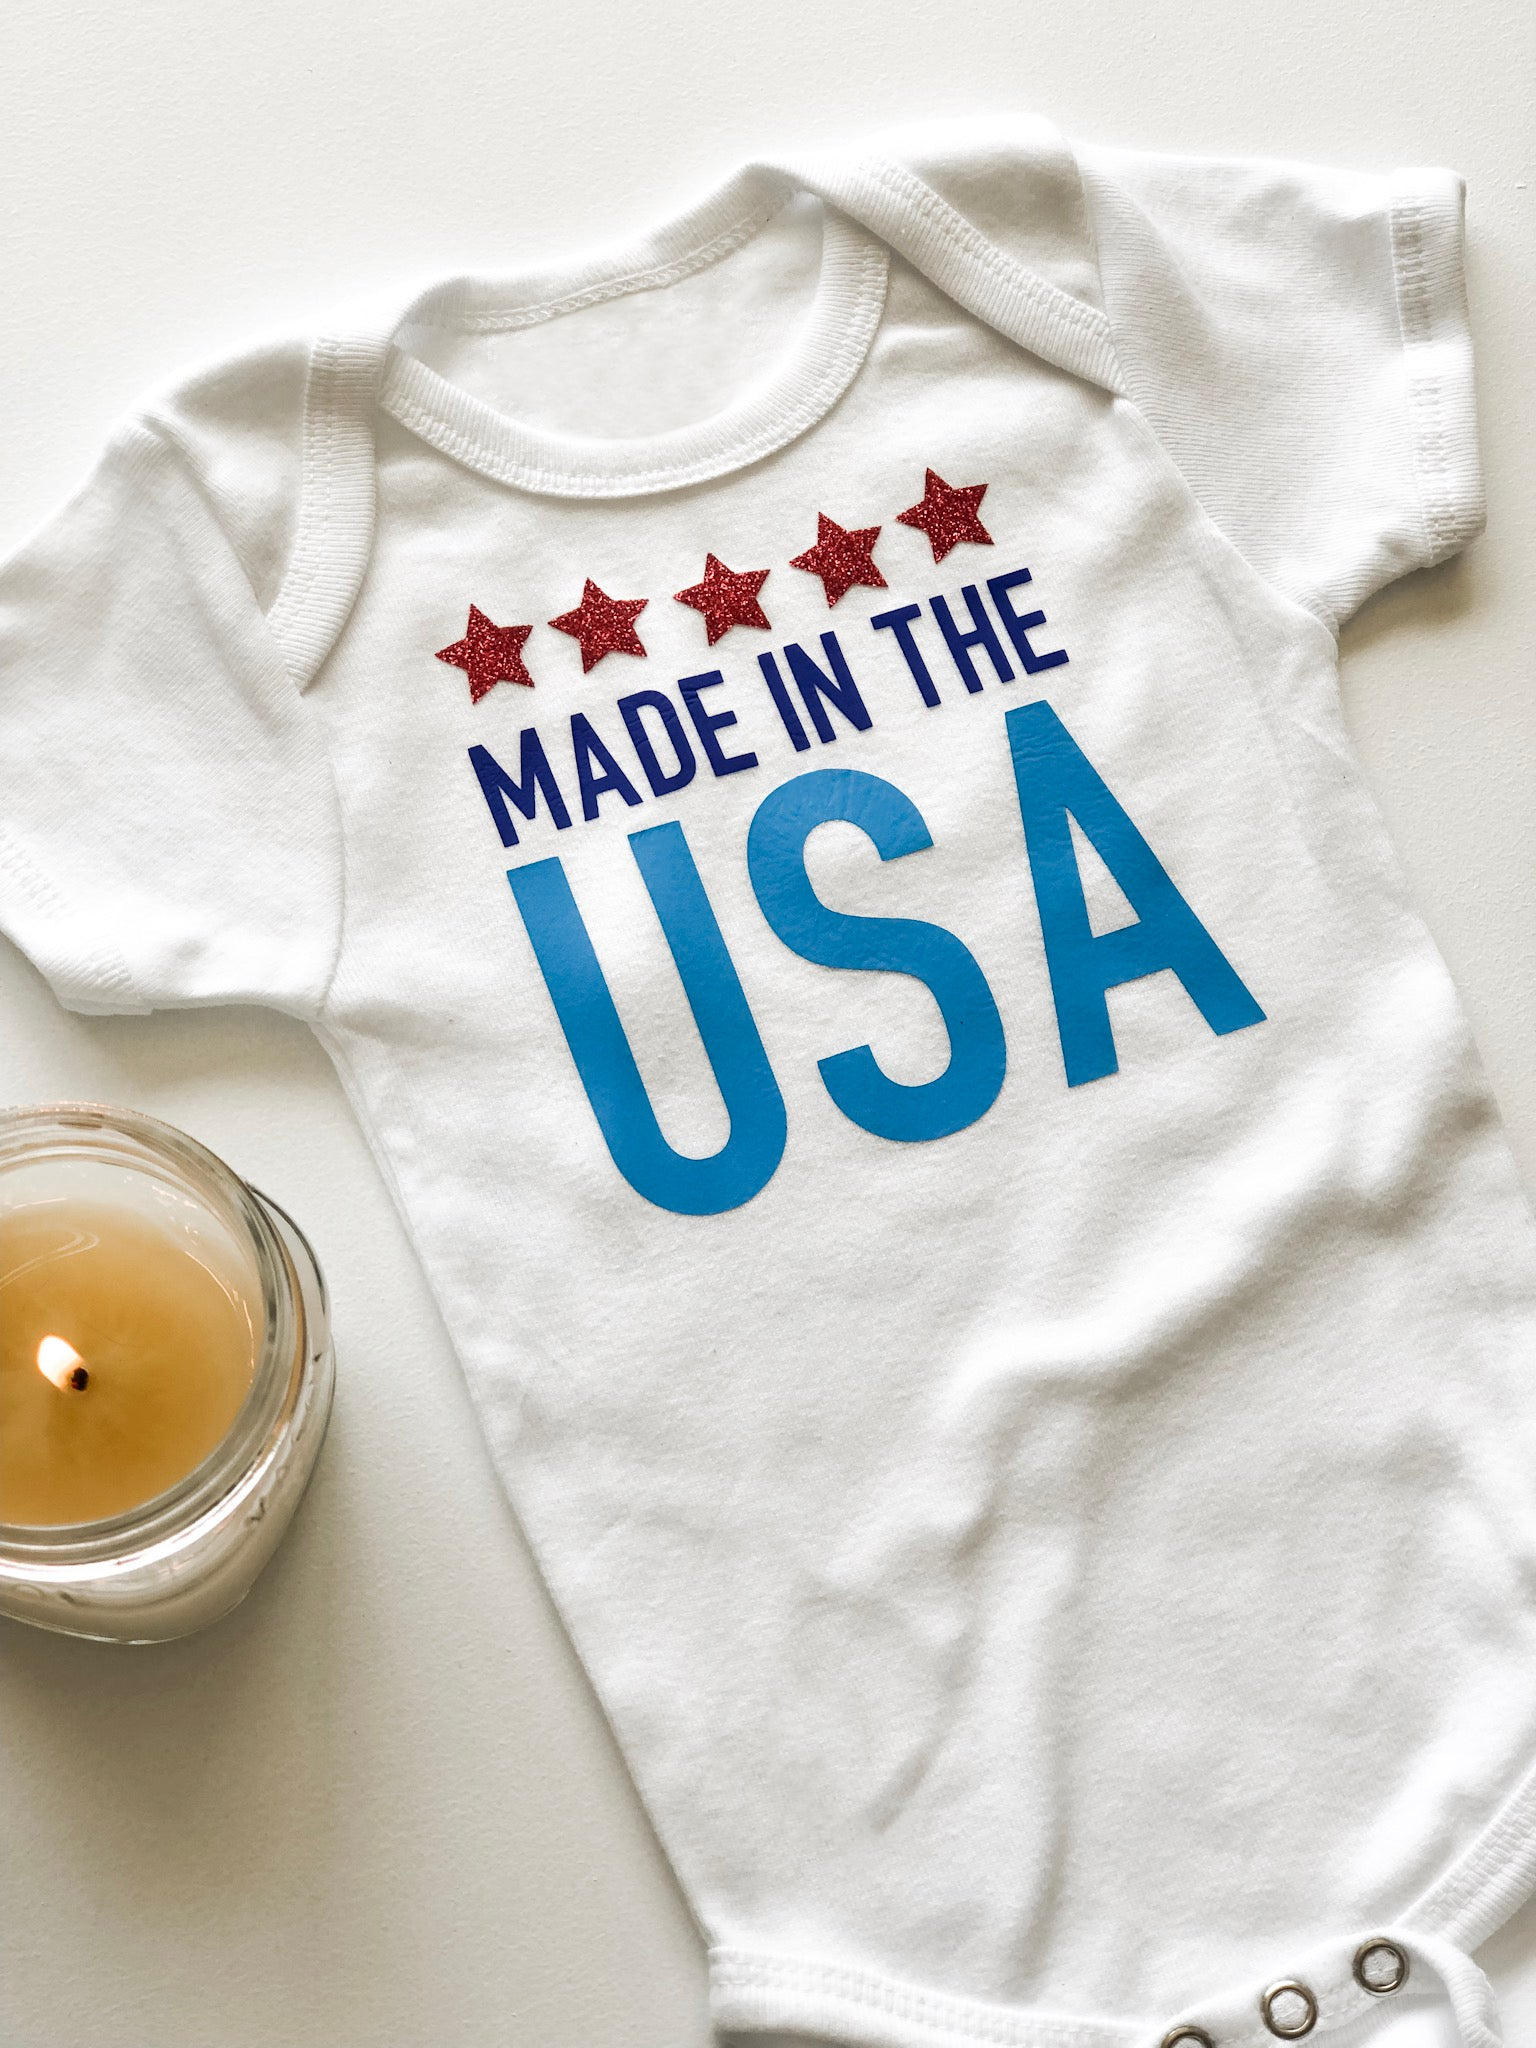 4th of July Baby Onesie with Cricut EasyPress2